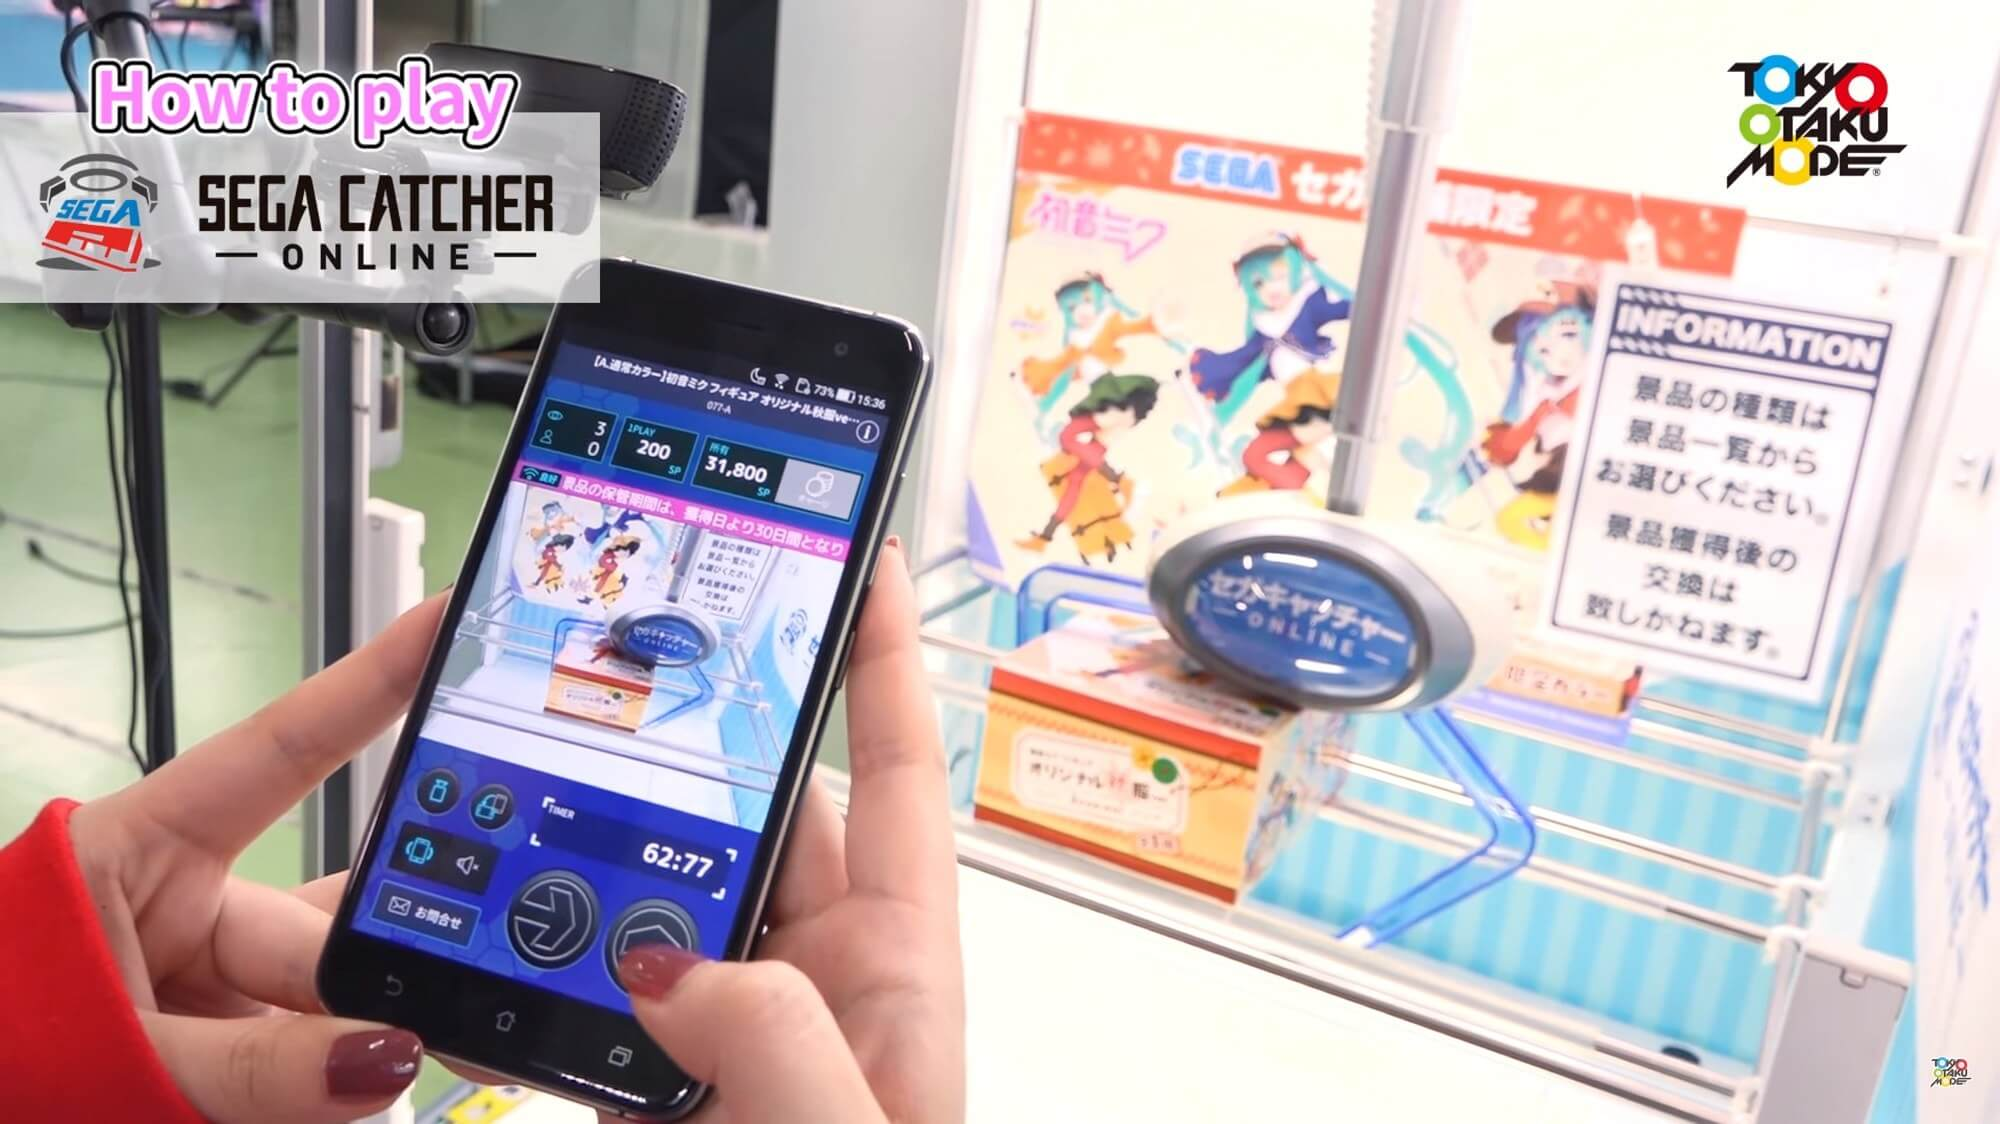 You can play real claw machines in Japan and win prizes remotely with this Sega app